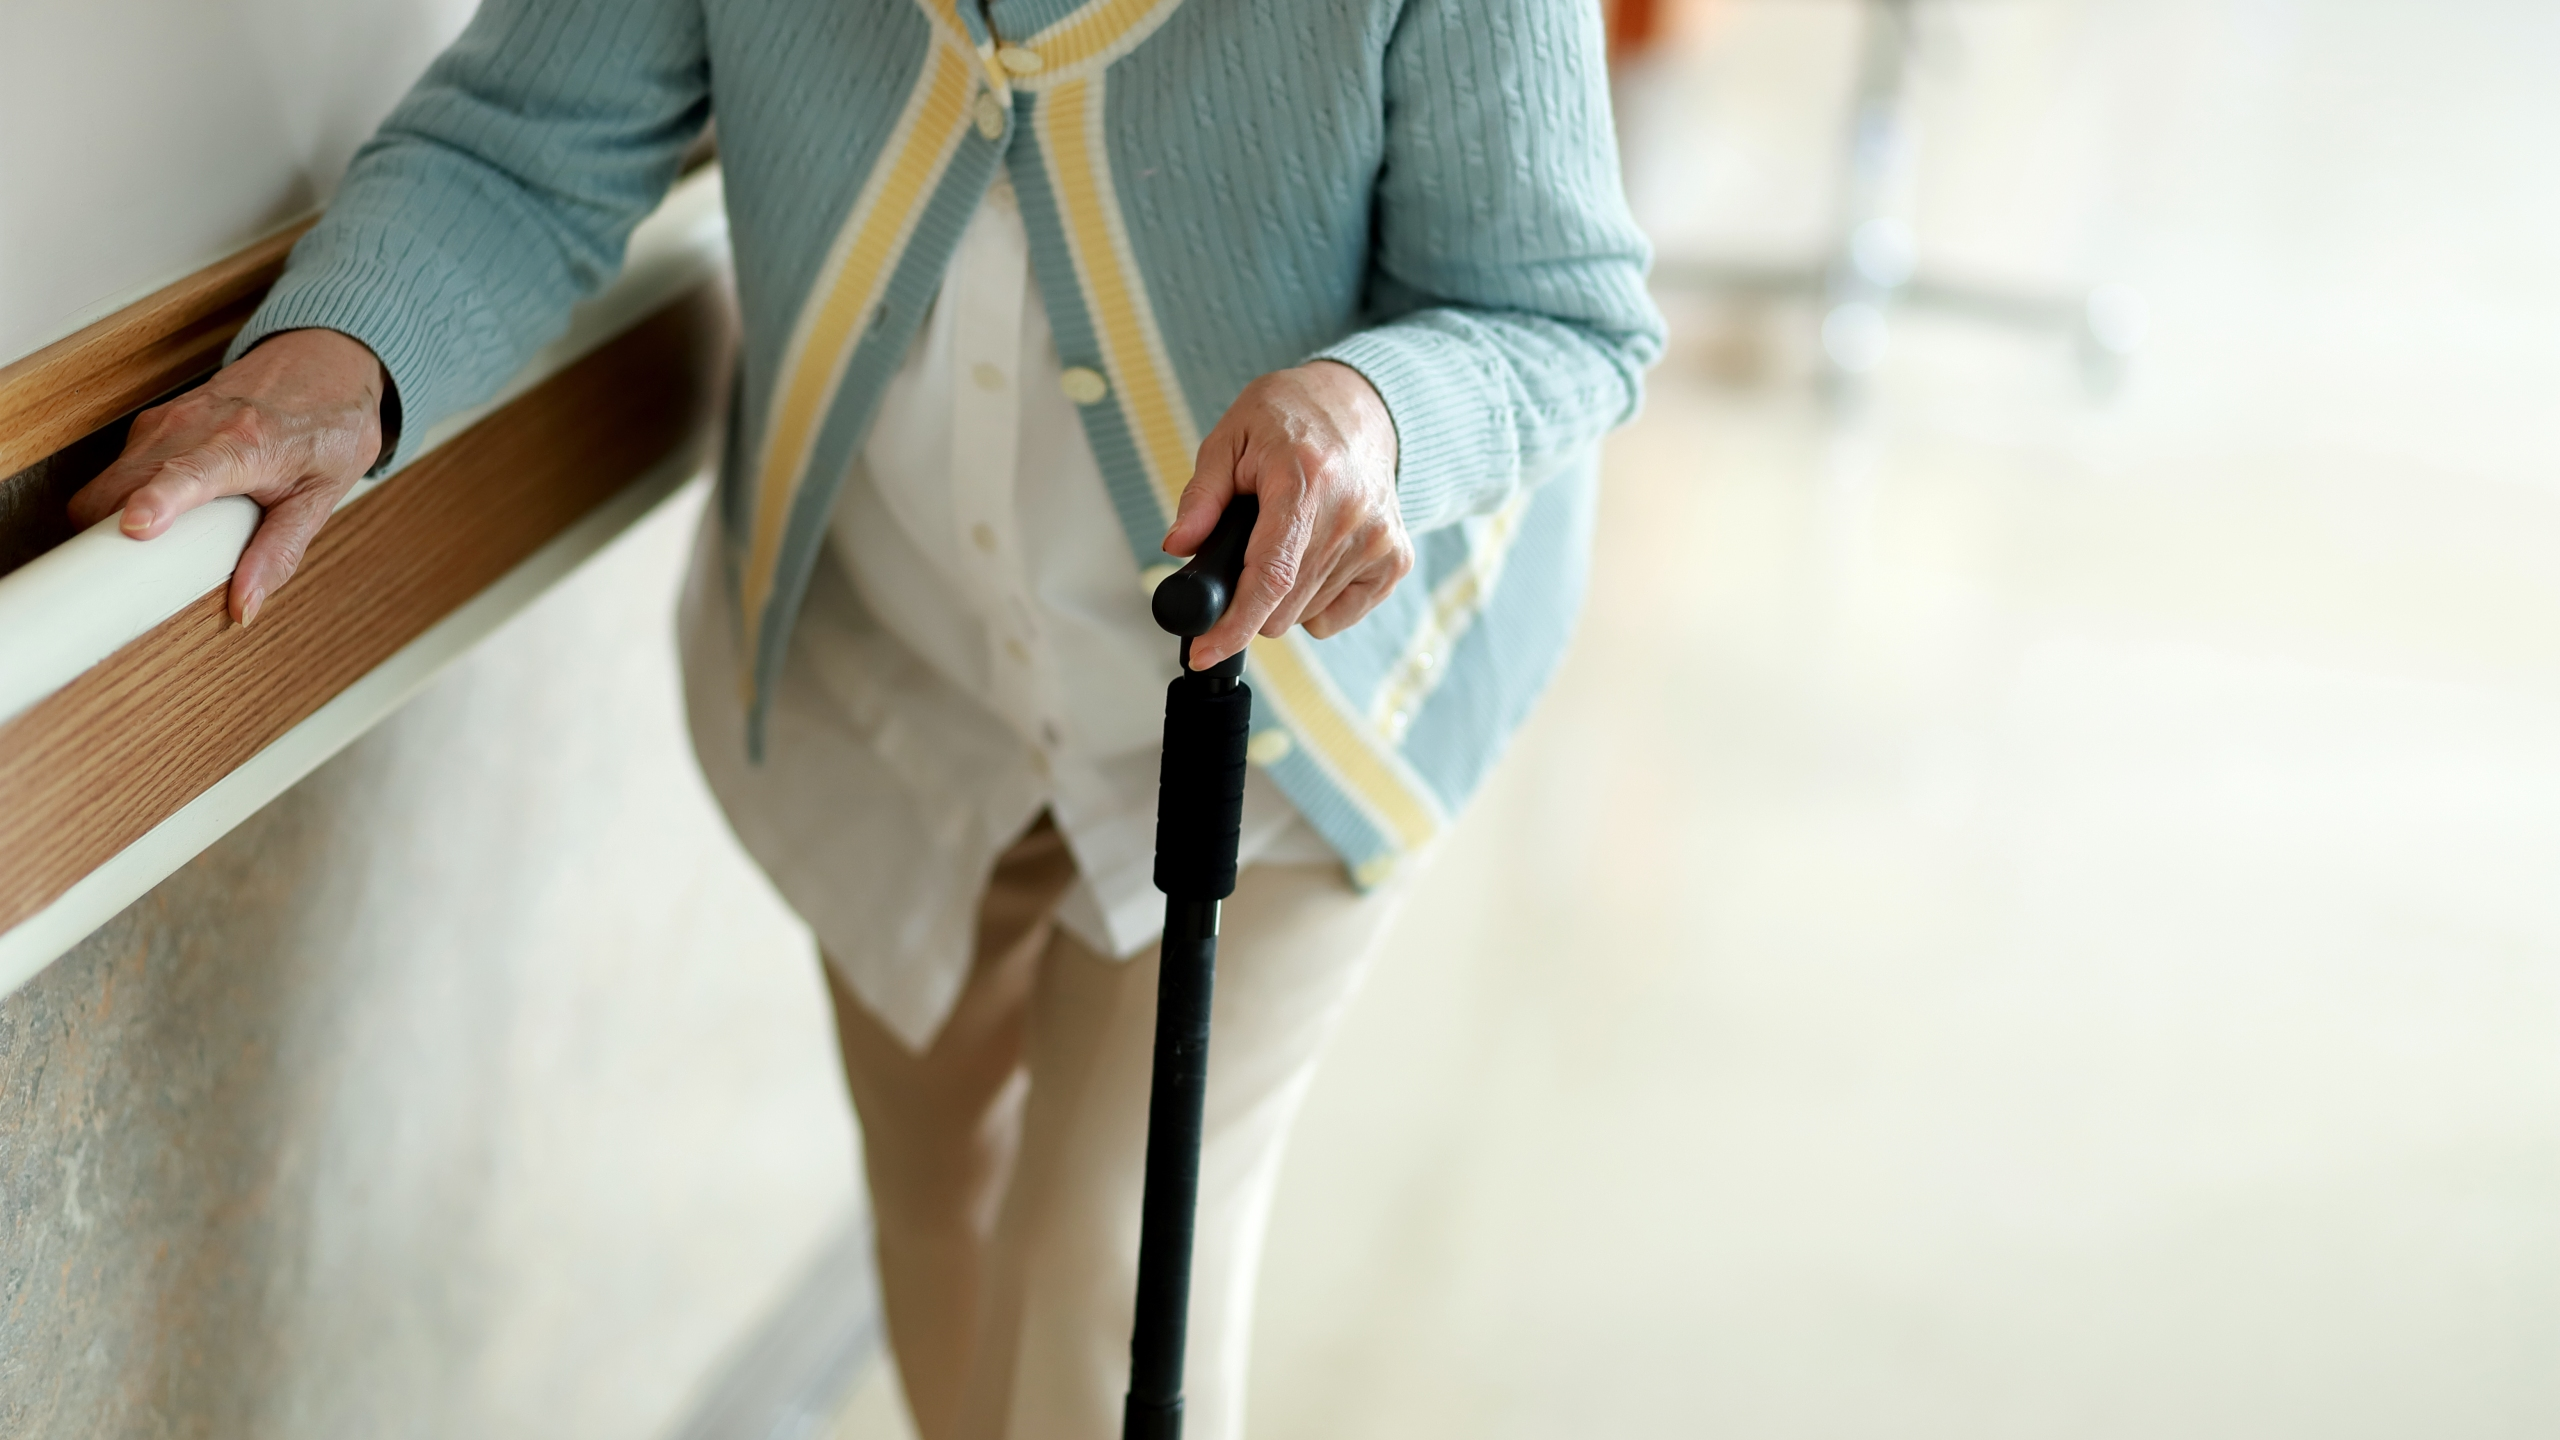 Senior woman walking with walking cane in hospital corridor